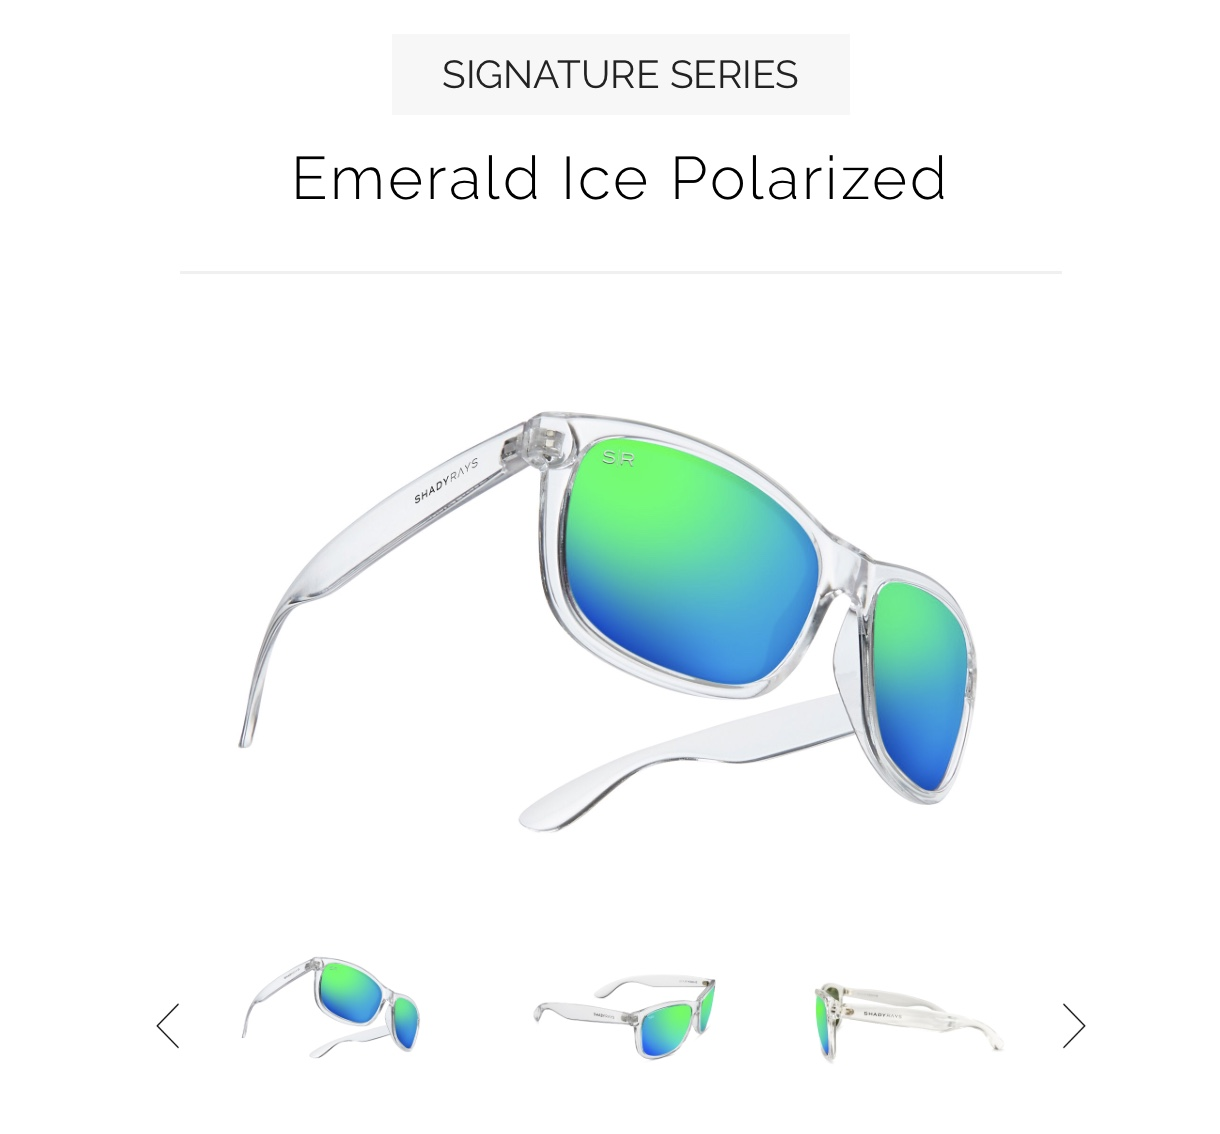 b38cda815dc6 I chose the Signature Series Emerald Ice Polarized as the frames are clear  and the polarized lenses are green and blue.